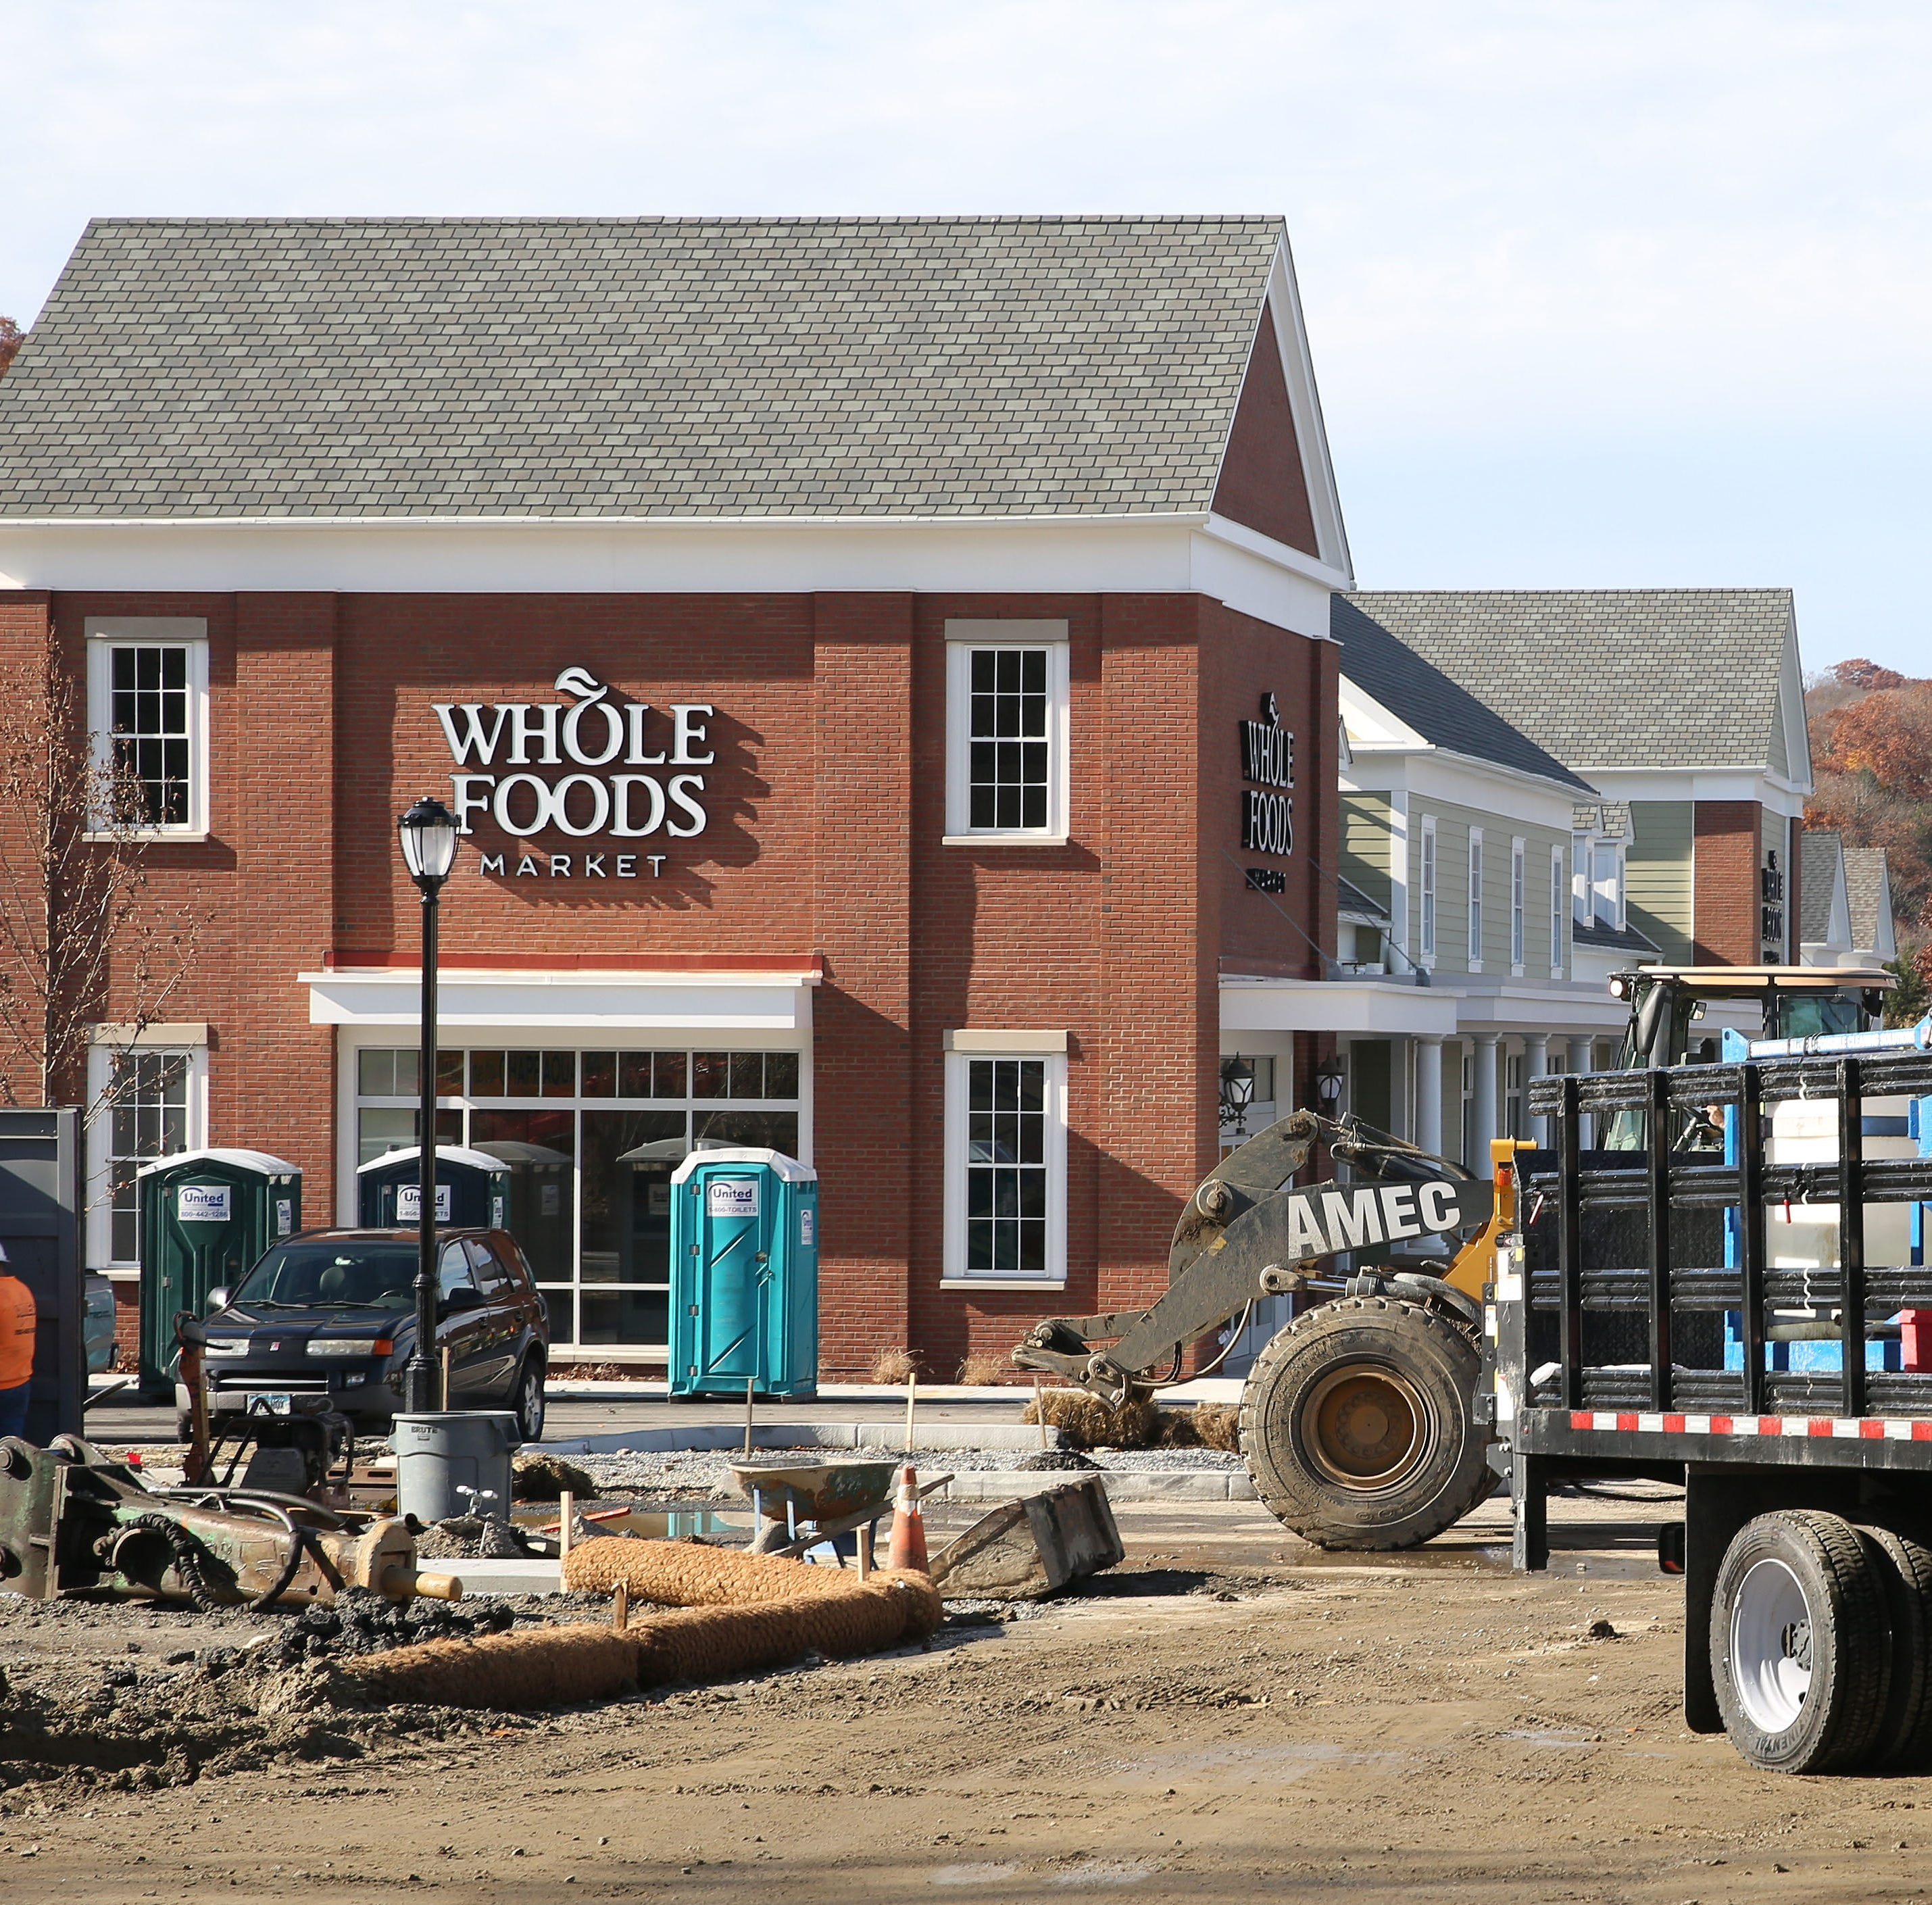 Whole Foods Chappaqua Crossing: Here's when it will open